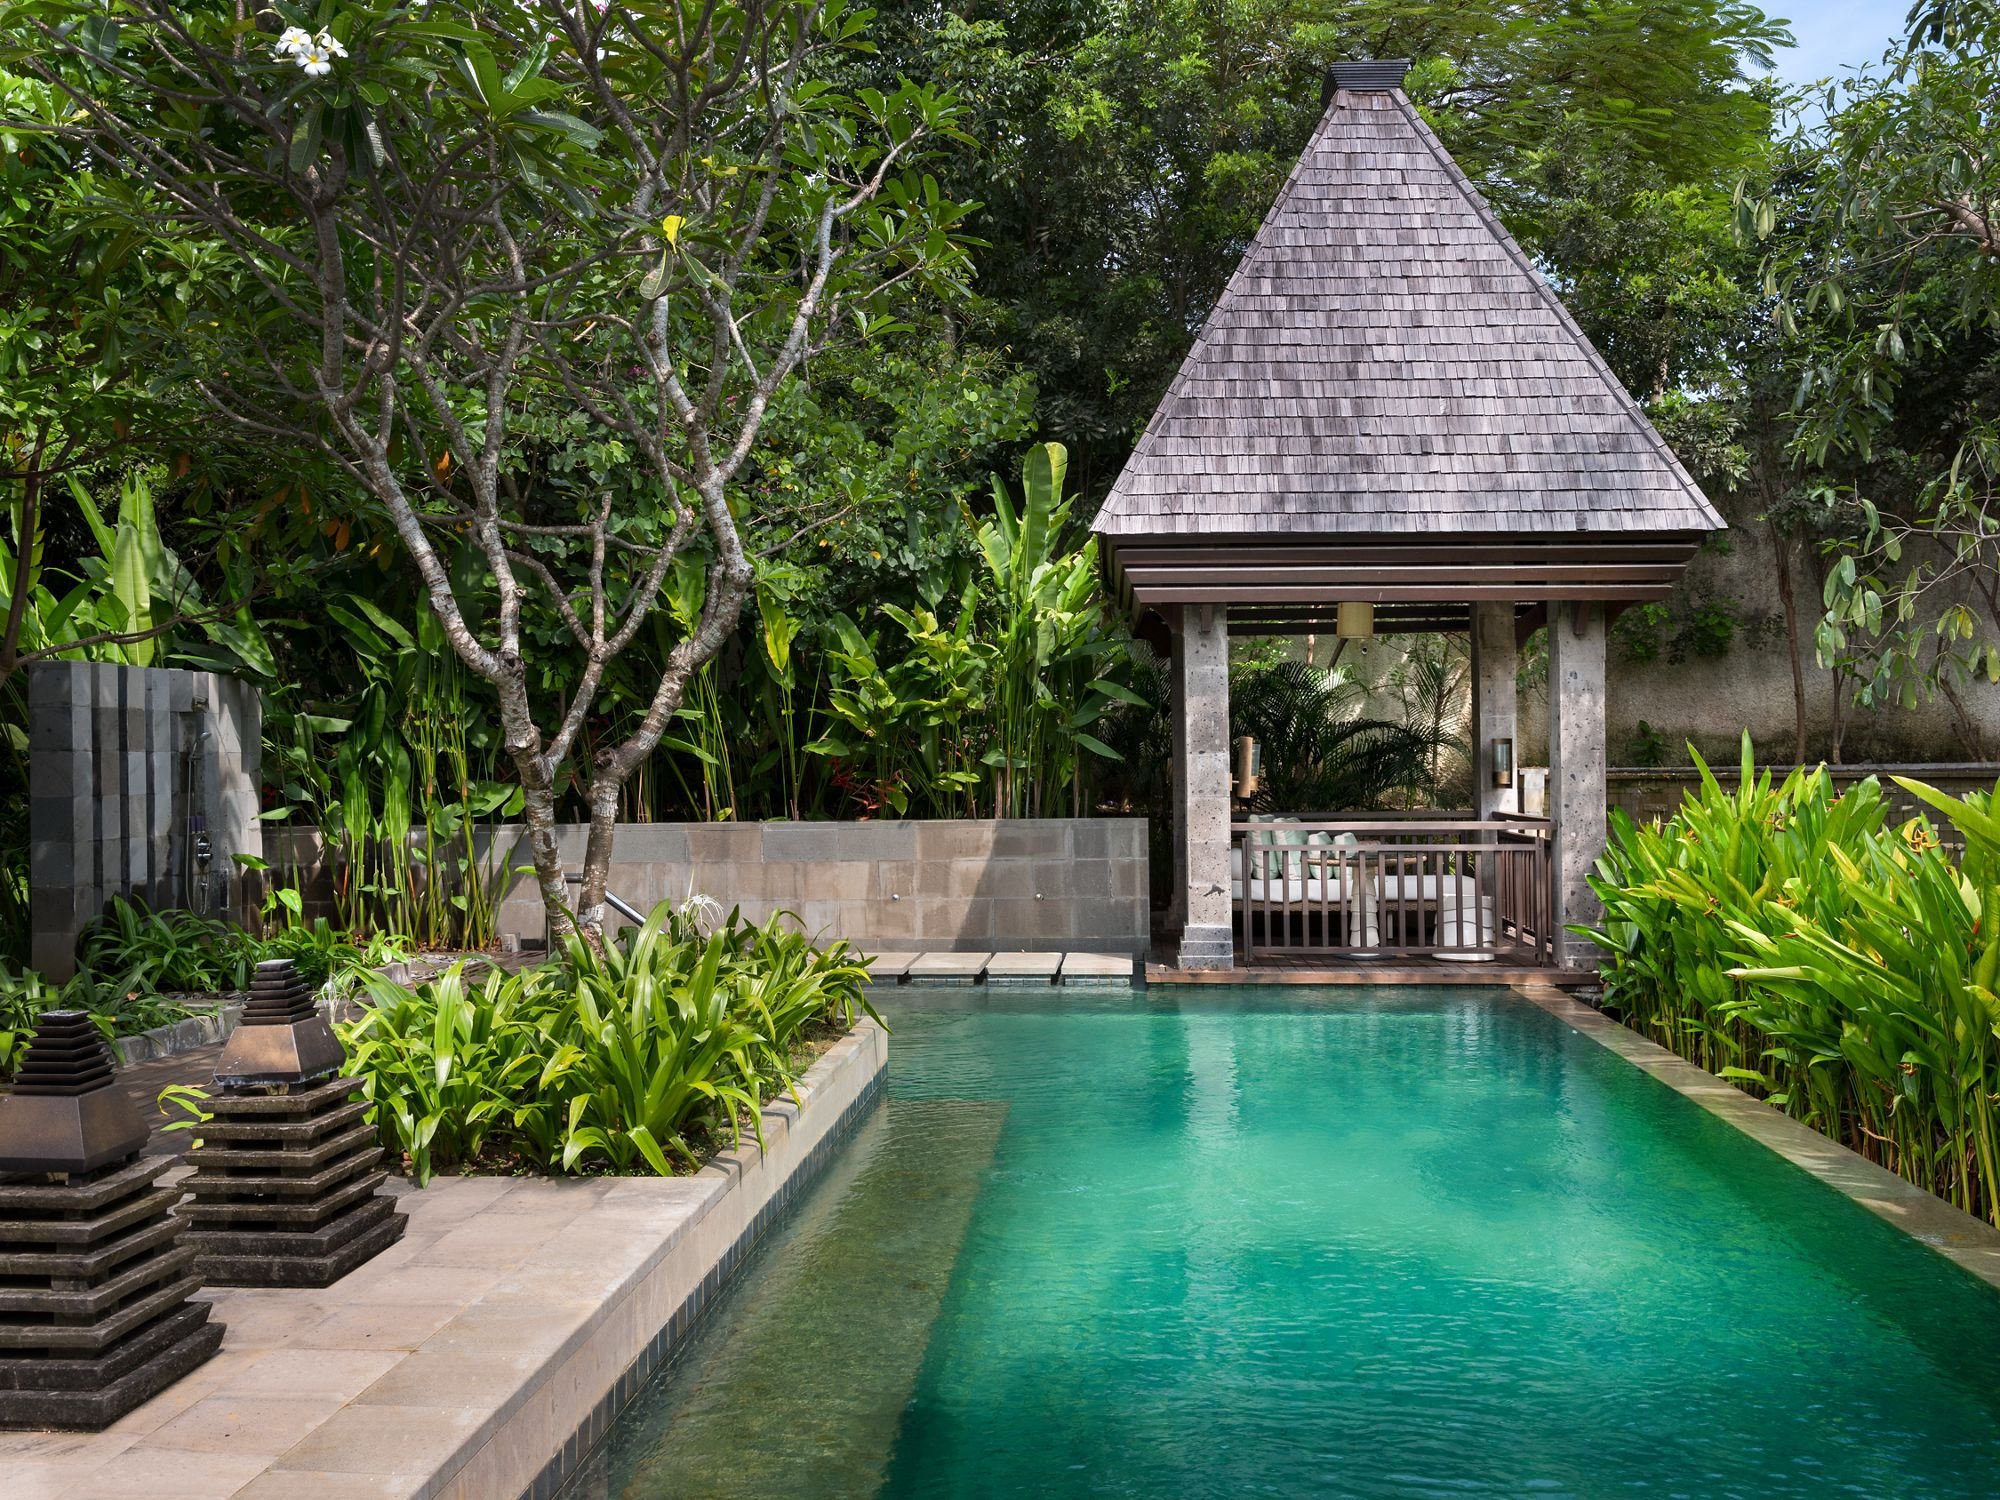 Garden With Swimming Pool luxury honeymoon villa in bali with private pool | the ritz